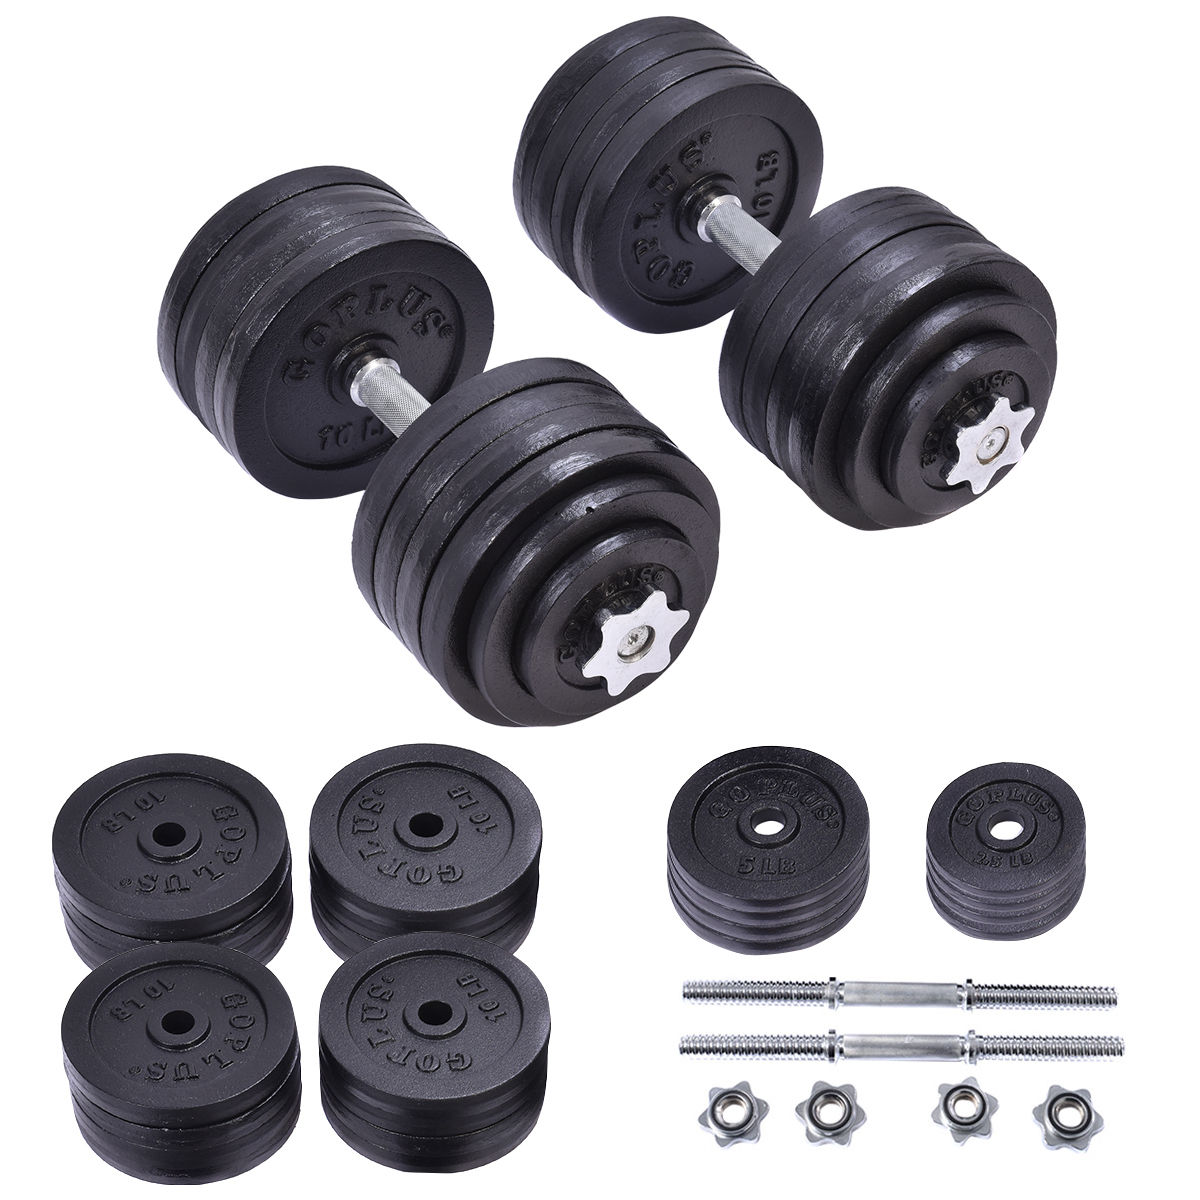 Costway 200 LB Weight Dumbbell Set Adjustable Cap Gym Barbell Plates Body Workout Image 1 of  sc 1 st  Walmart & Costway 200 LB Weight Dumbbell Set Adjustable Cap Gym Barbell Plates ...